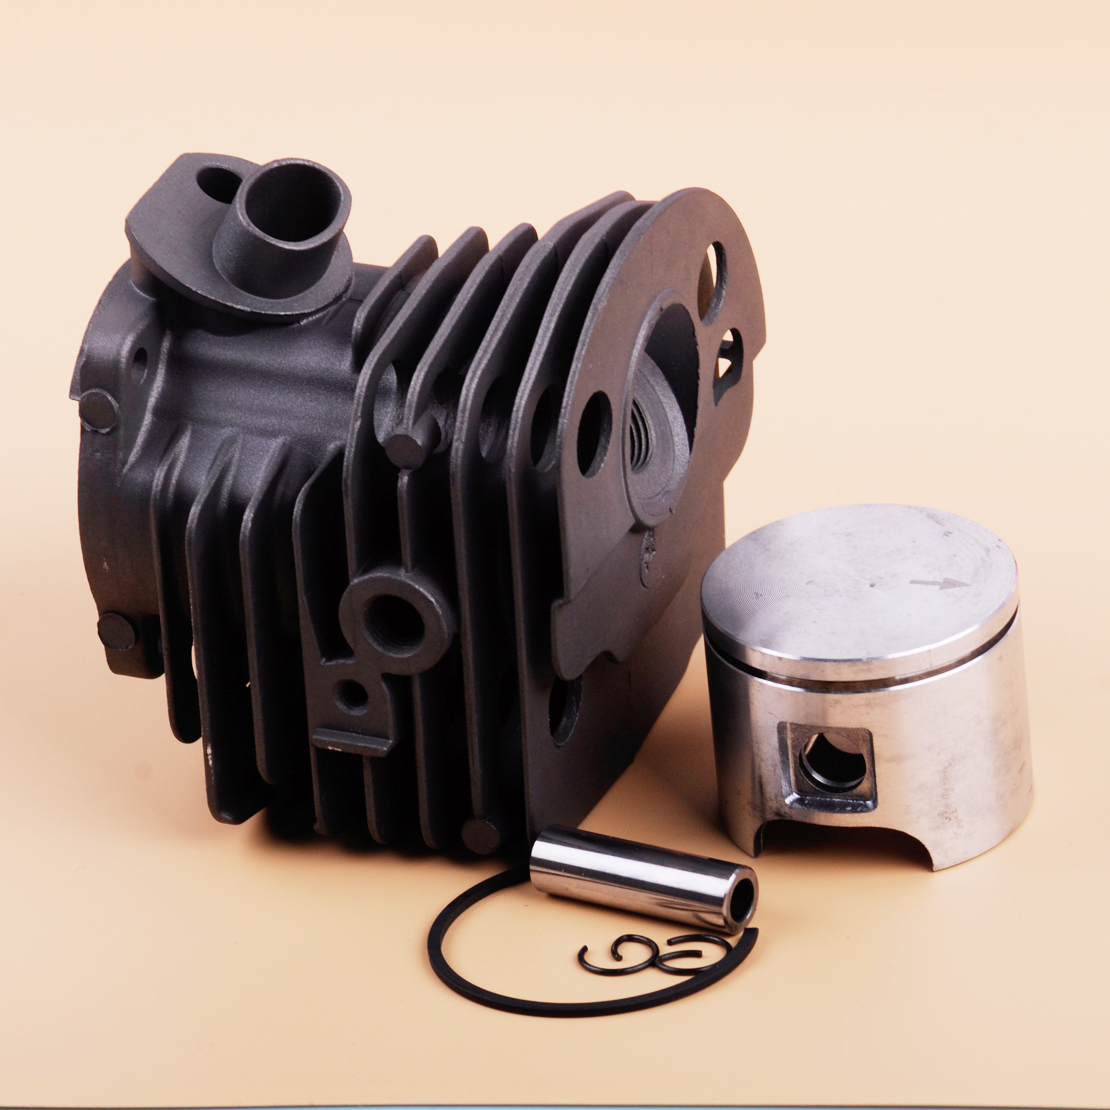 LETAOSK New 46mm Cylinder  amp  Piston Kit 503 60 91 71 Tool fit for Husqvarna 50 51 5555 Chainsaw